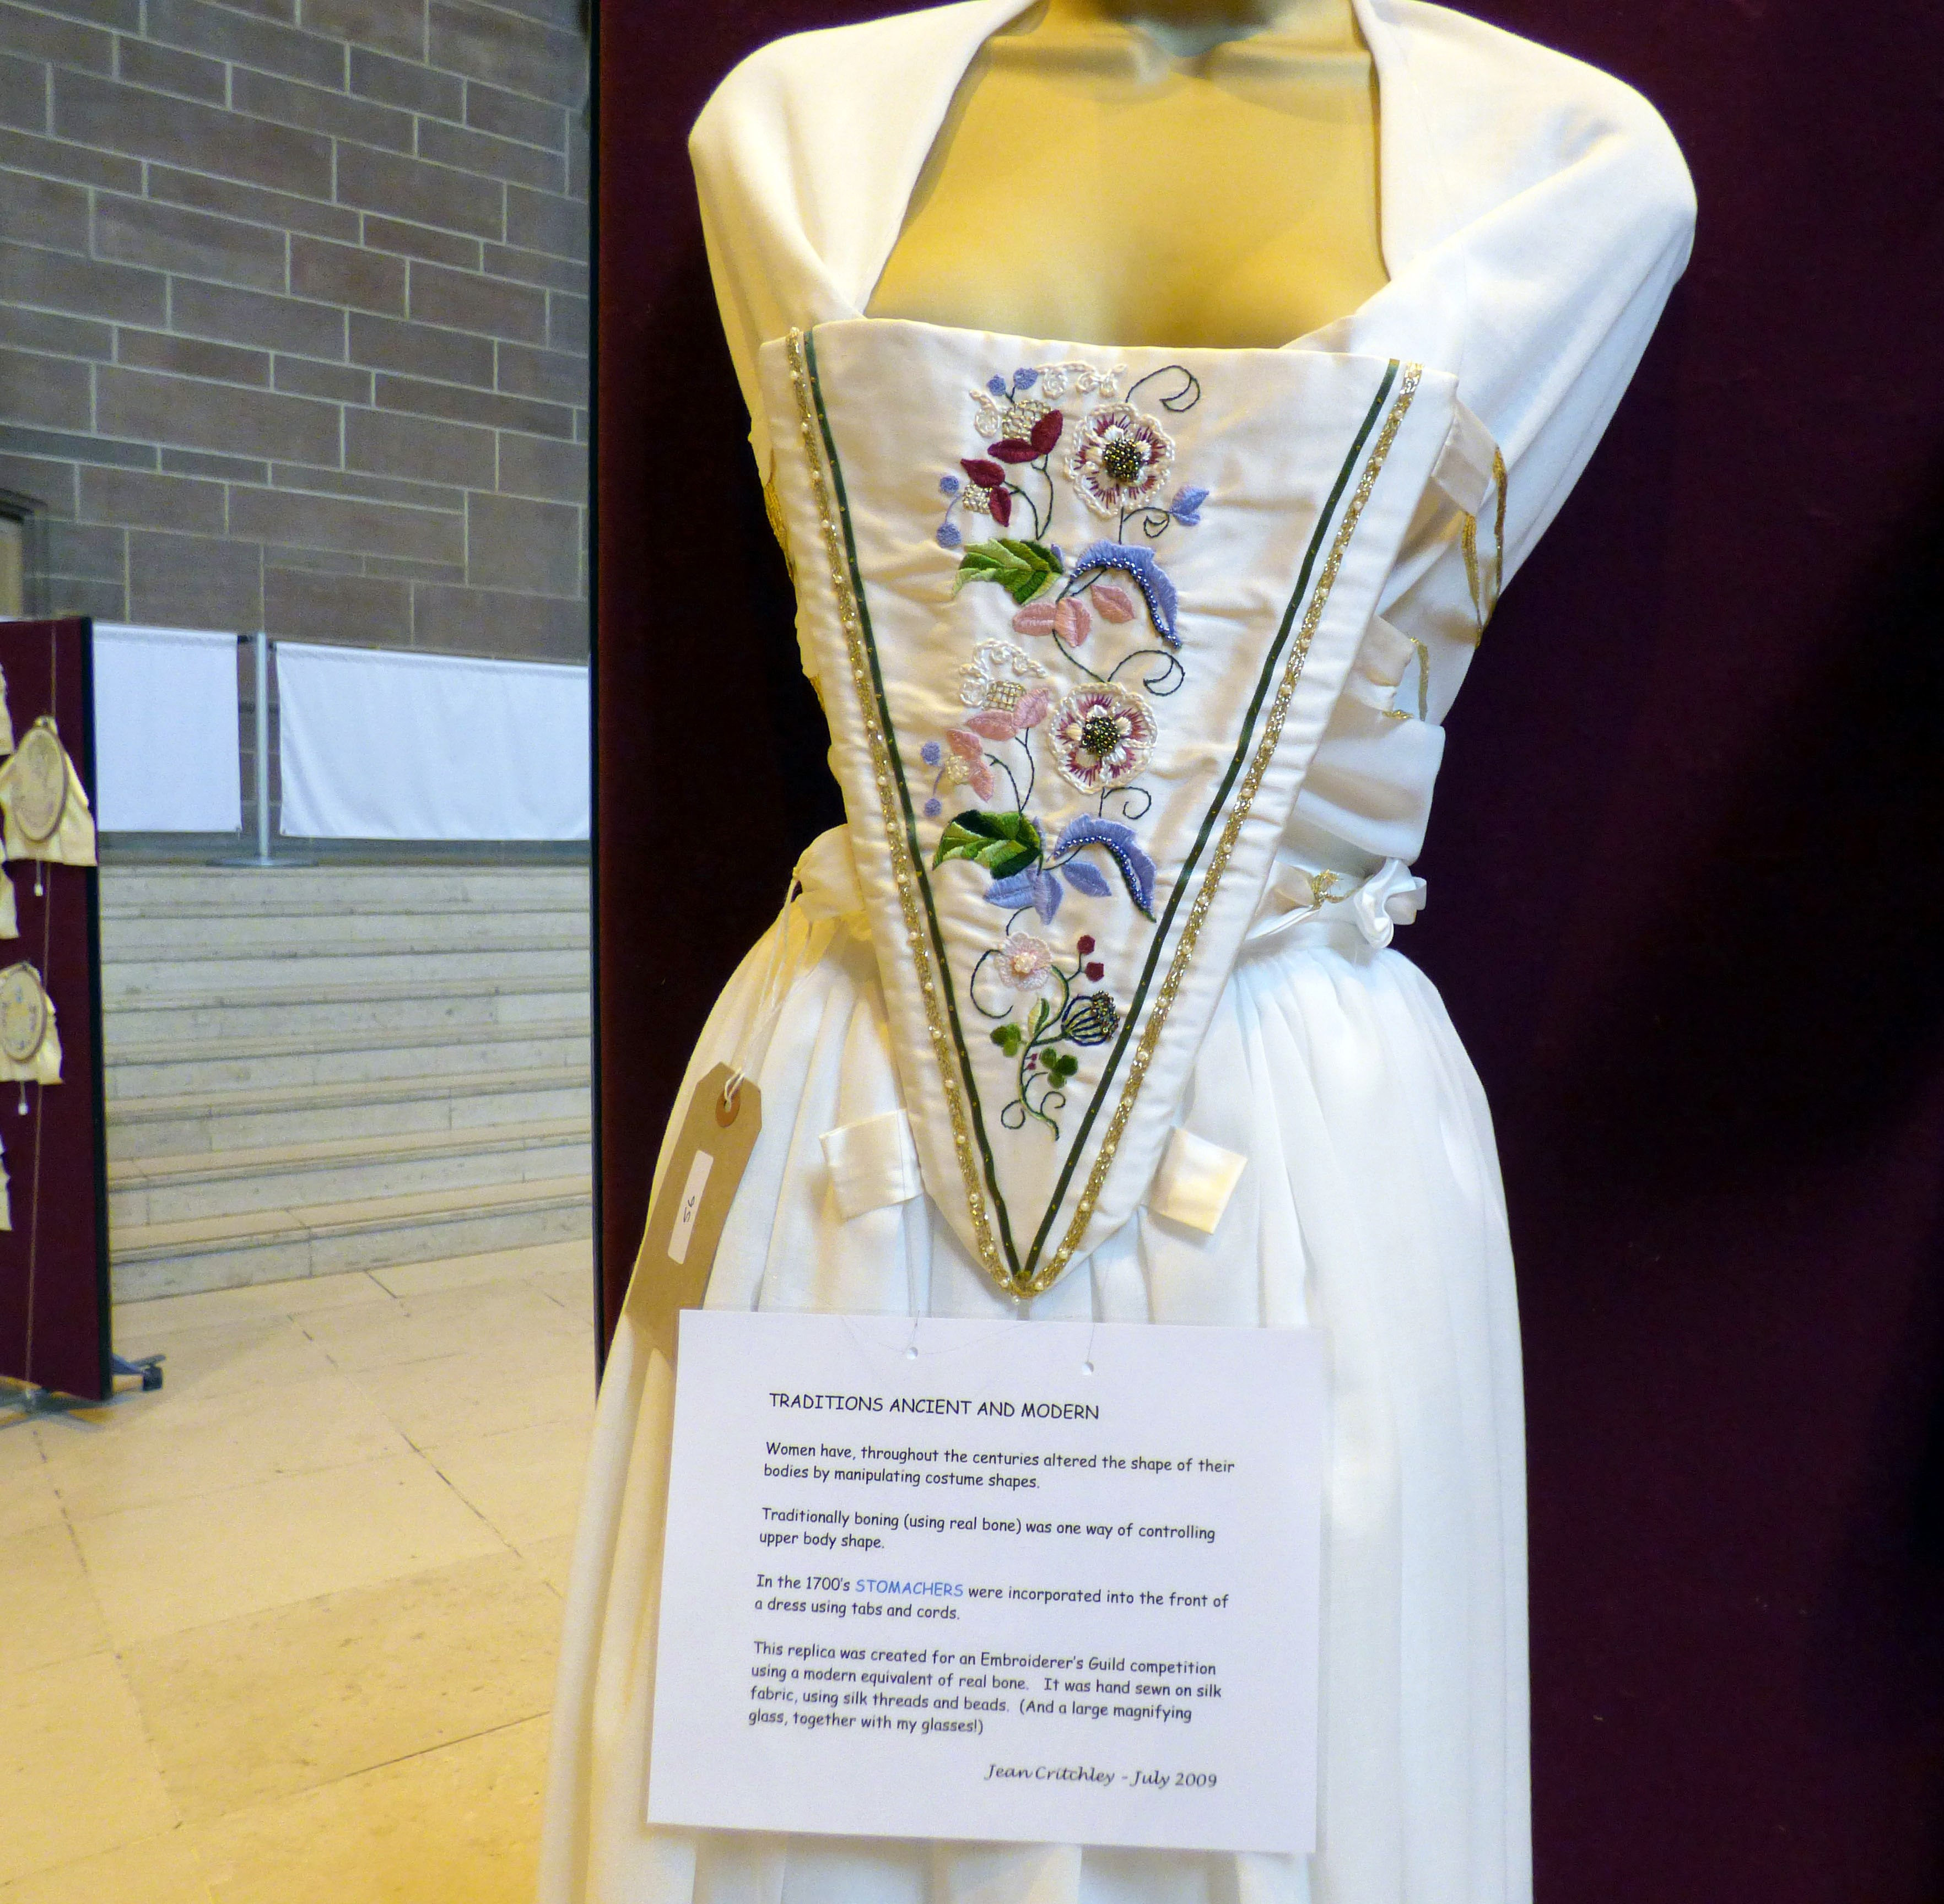 STOMACHER by Jean Critchley at 60 Glorious Years exhibition 2016